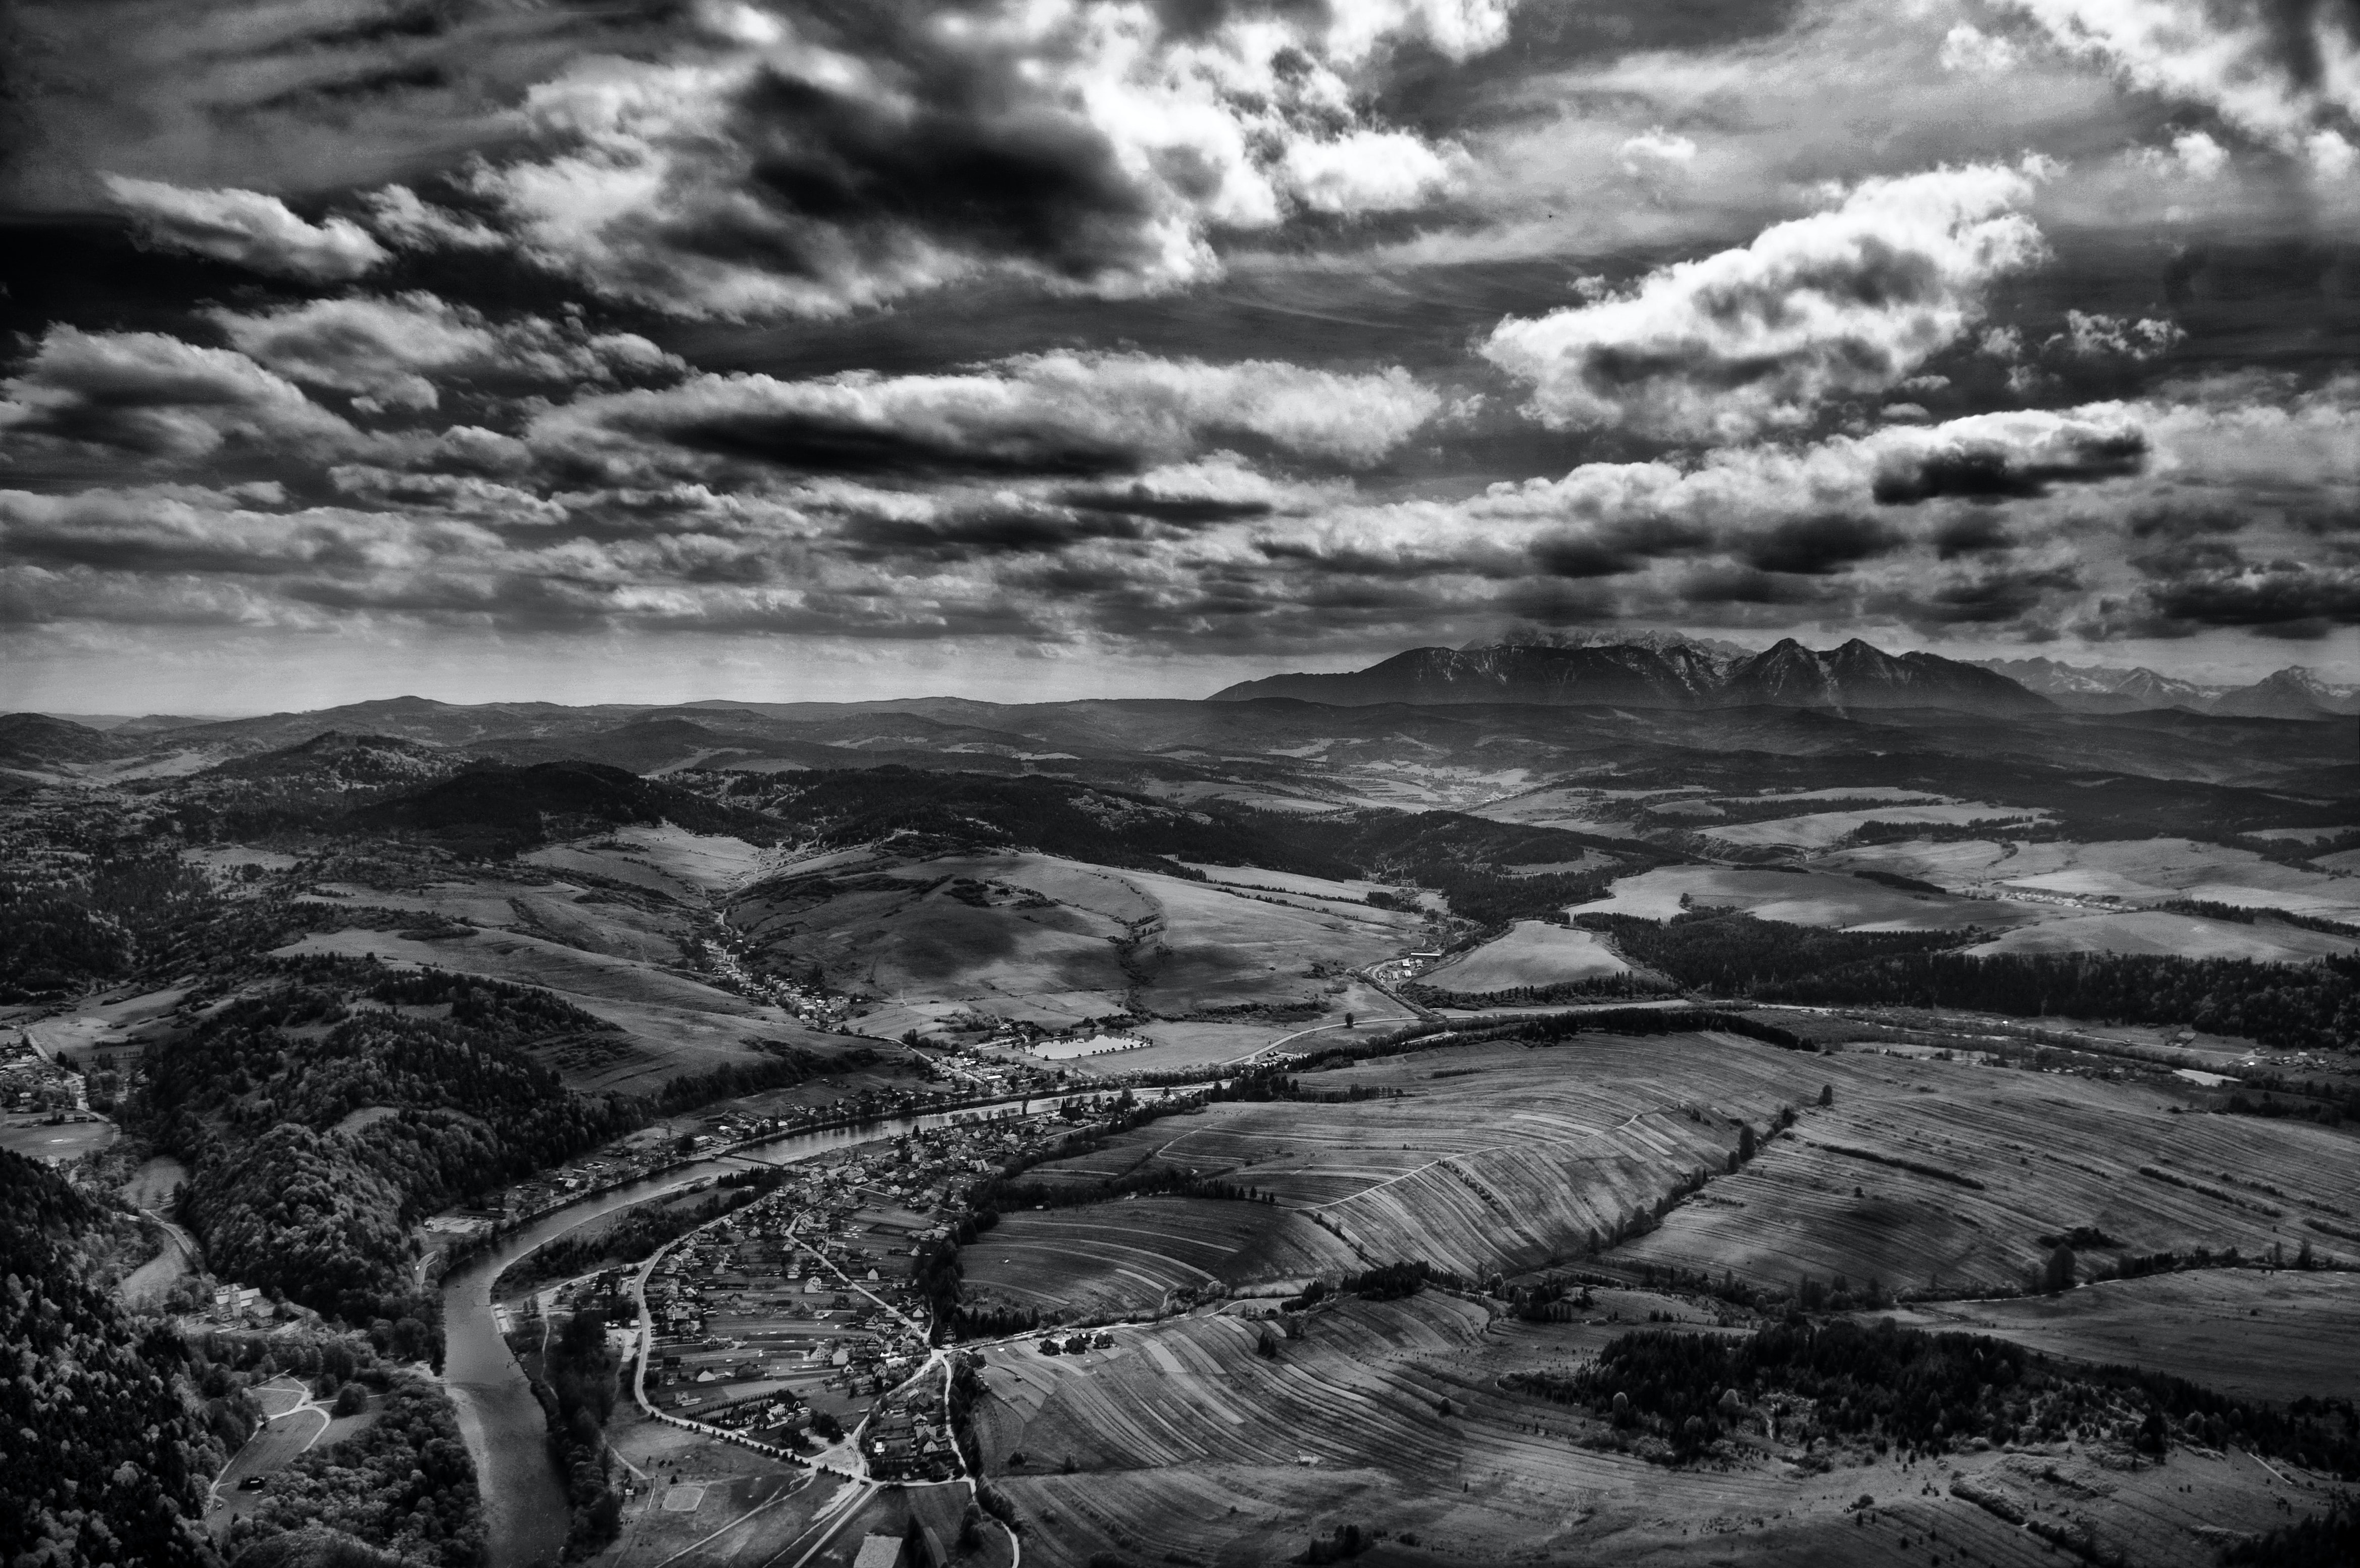 Black and white panoramic shot of dramatic cloudy sky and rocky landscape,Trzy Korony, punkt widokowy